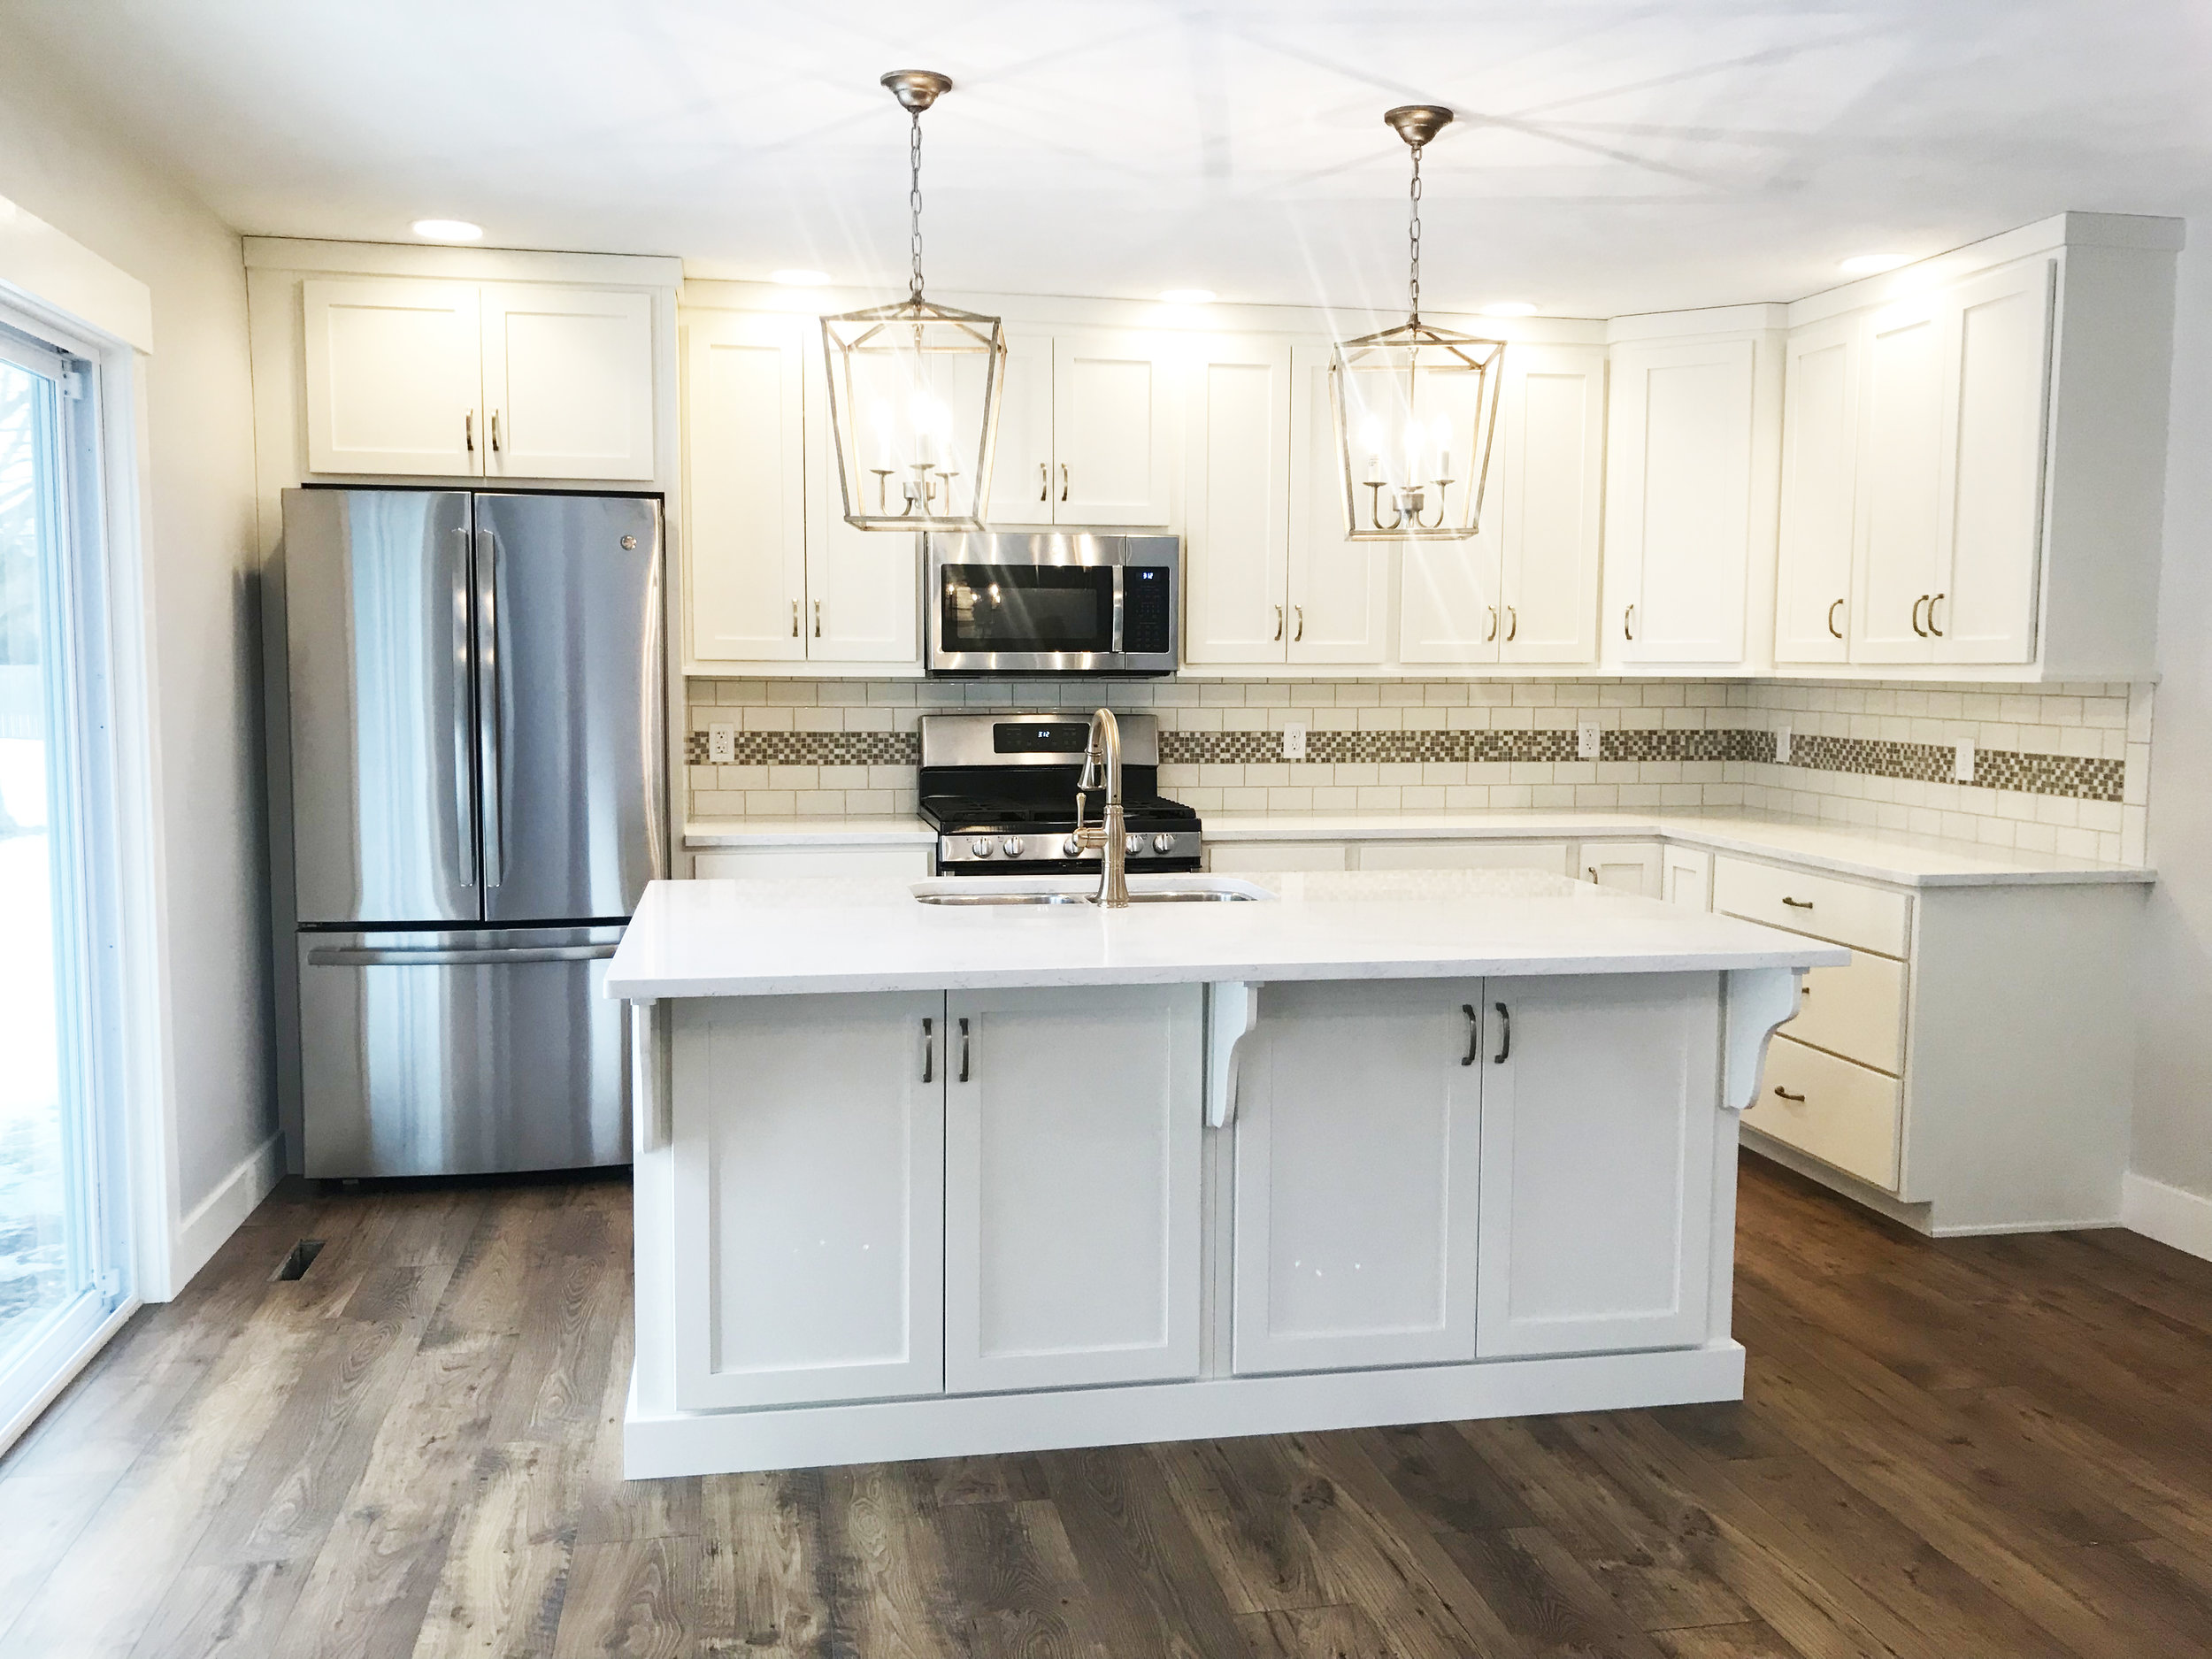 All new custom Amish-made cabinets and an oversized island make this kitchen family friendly!